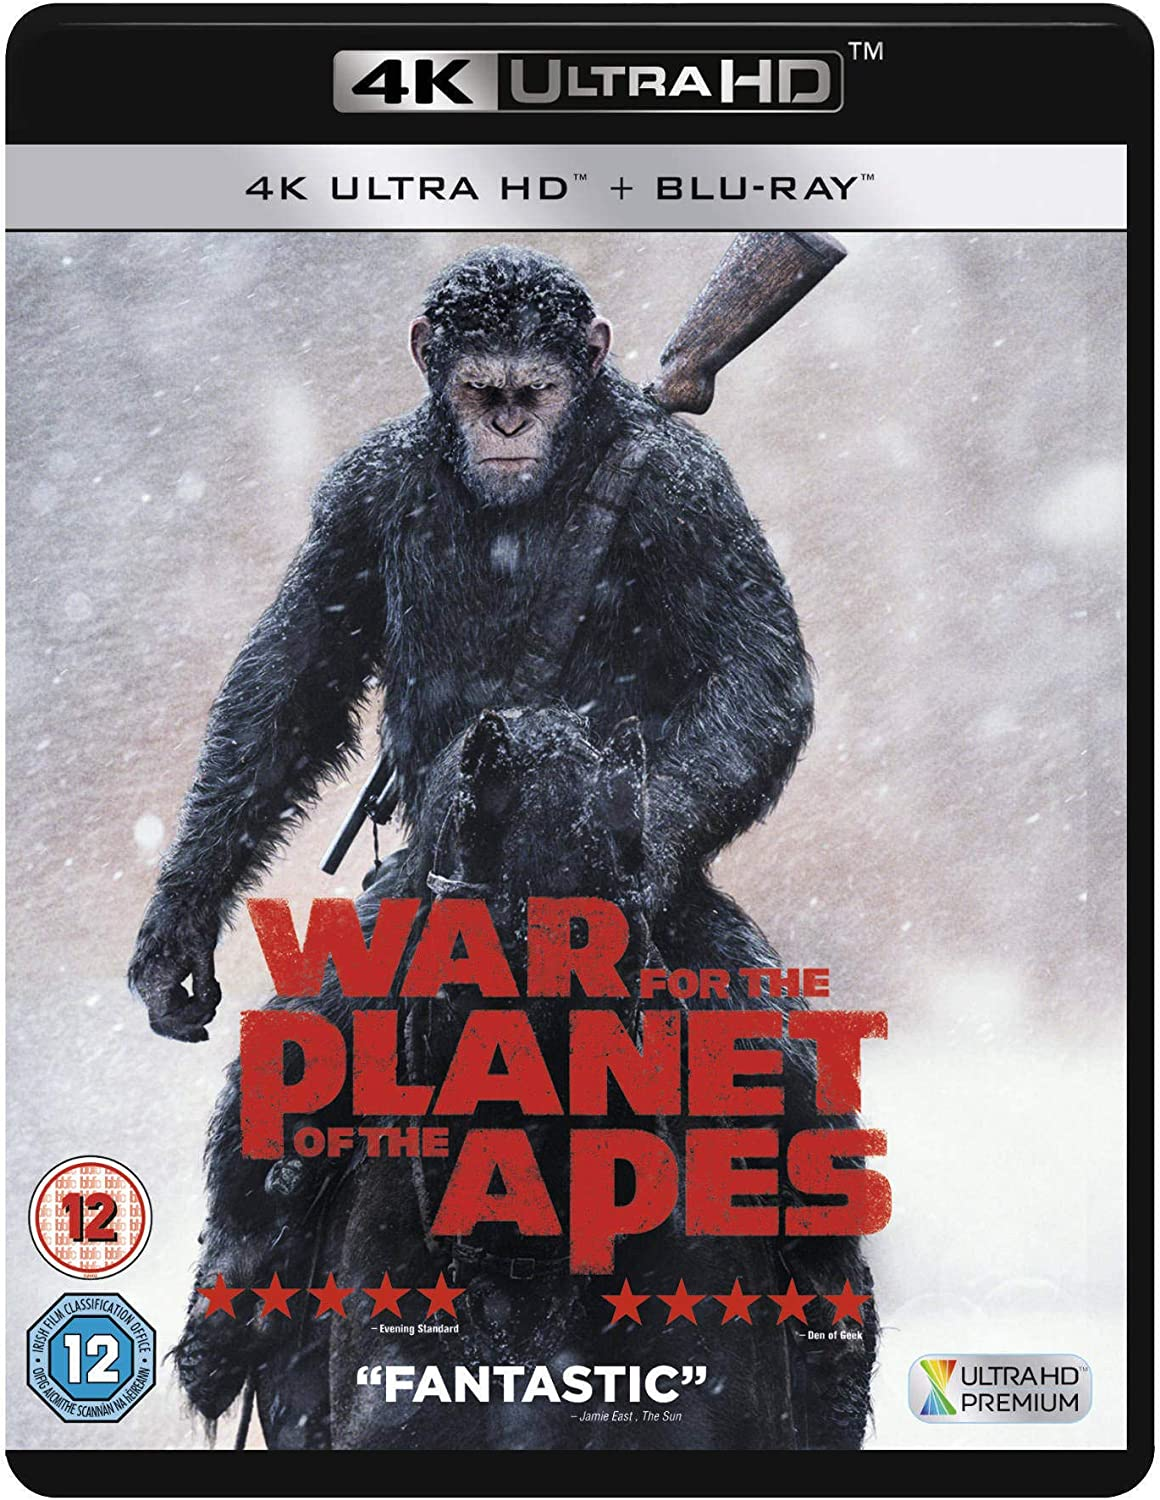 War For The Planet Of The Apes Uhd Blu Ray 2017 Amazon Co Uk Andy Serkis Woody Harrelson Steve Zahn Amiah Miller Karin Konoval Terry Notary Judy Greer Michael Adamthwaite Ty Olsson Gabriel Chavarria Michael